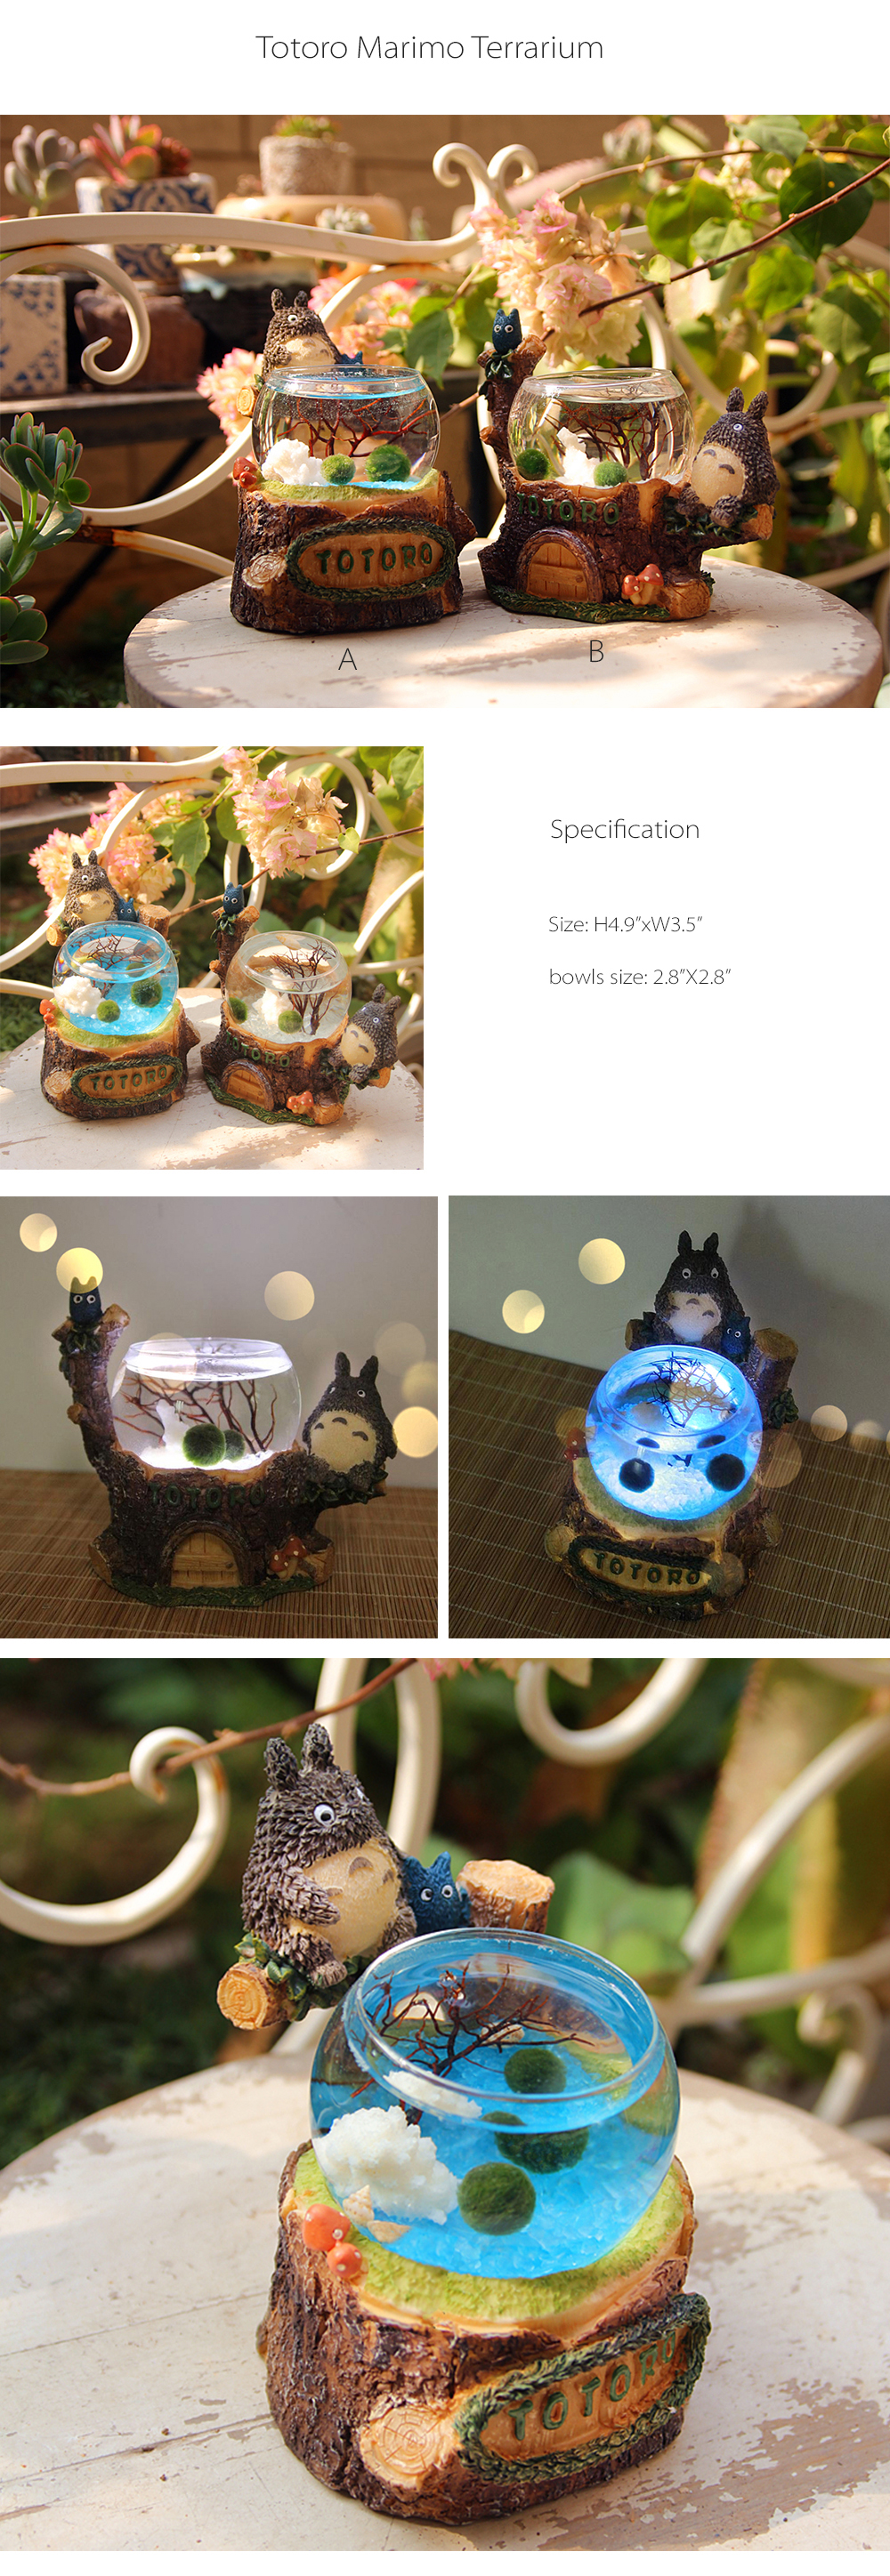 Totoro Marimo Terrarium Great Addition To Your Home